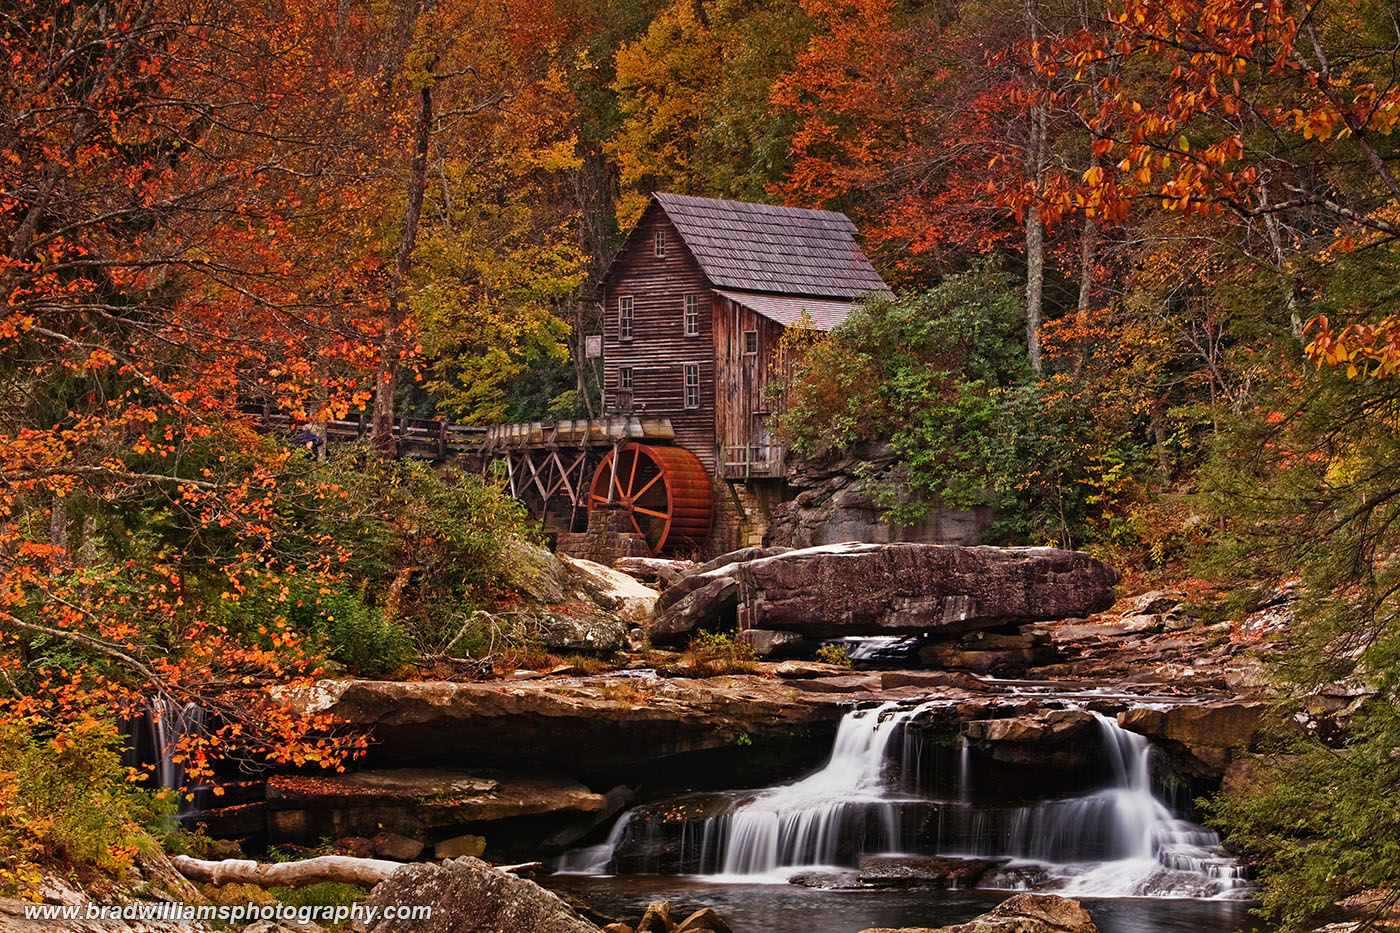 Glade Creek Grist Mill, West Virginia, babcock Park, fall color,, photo